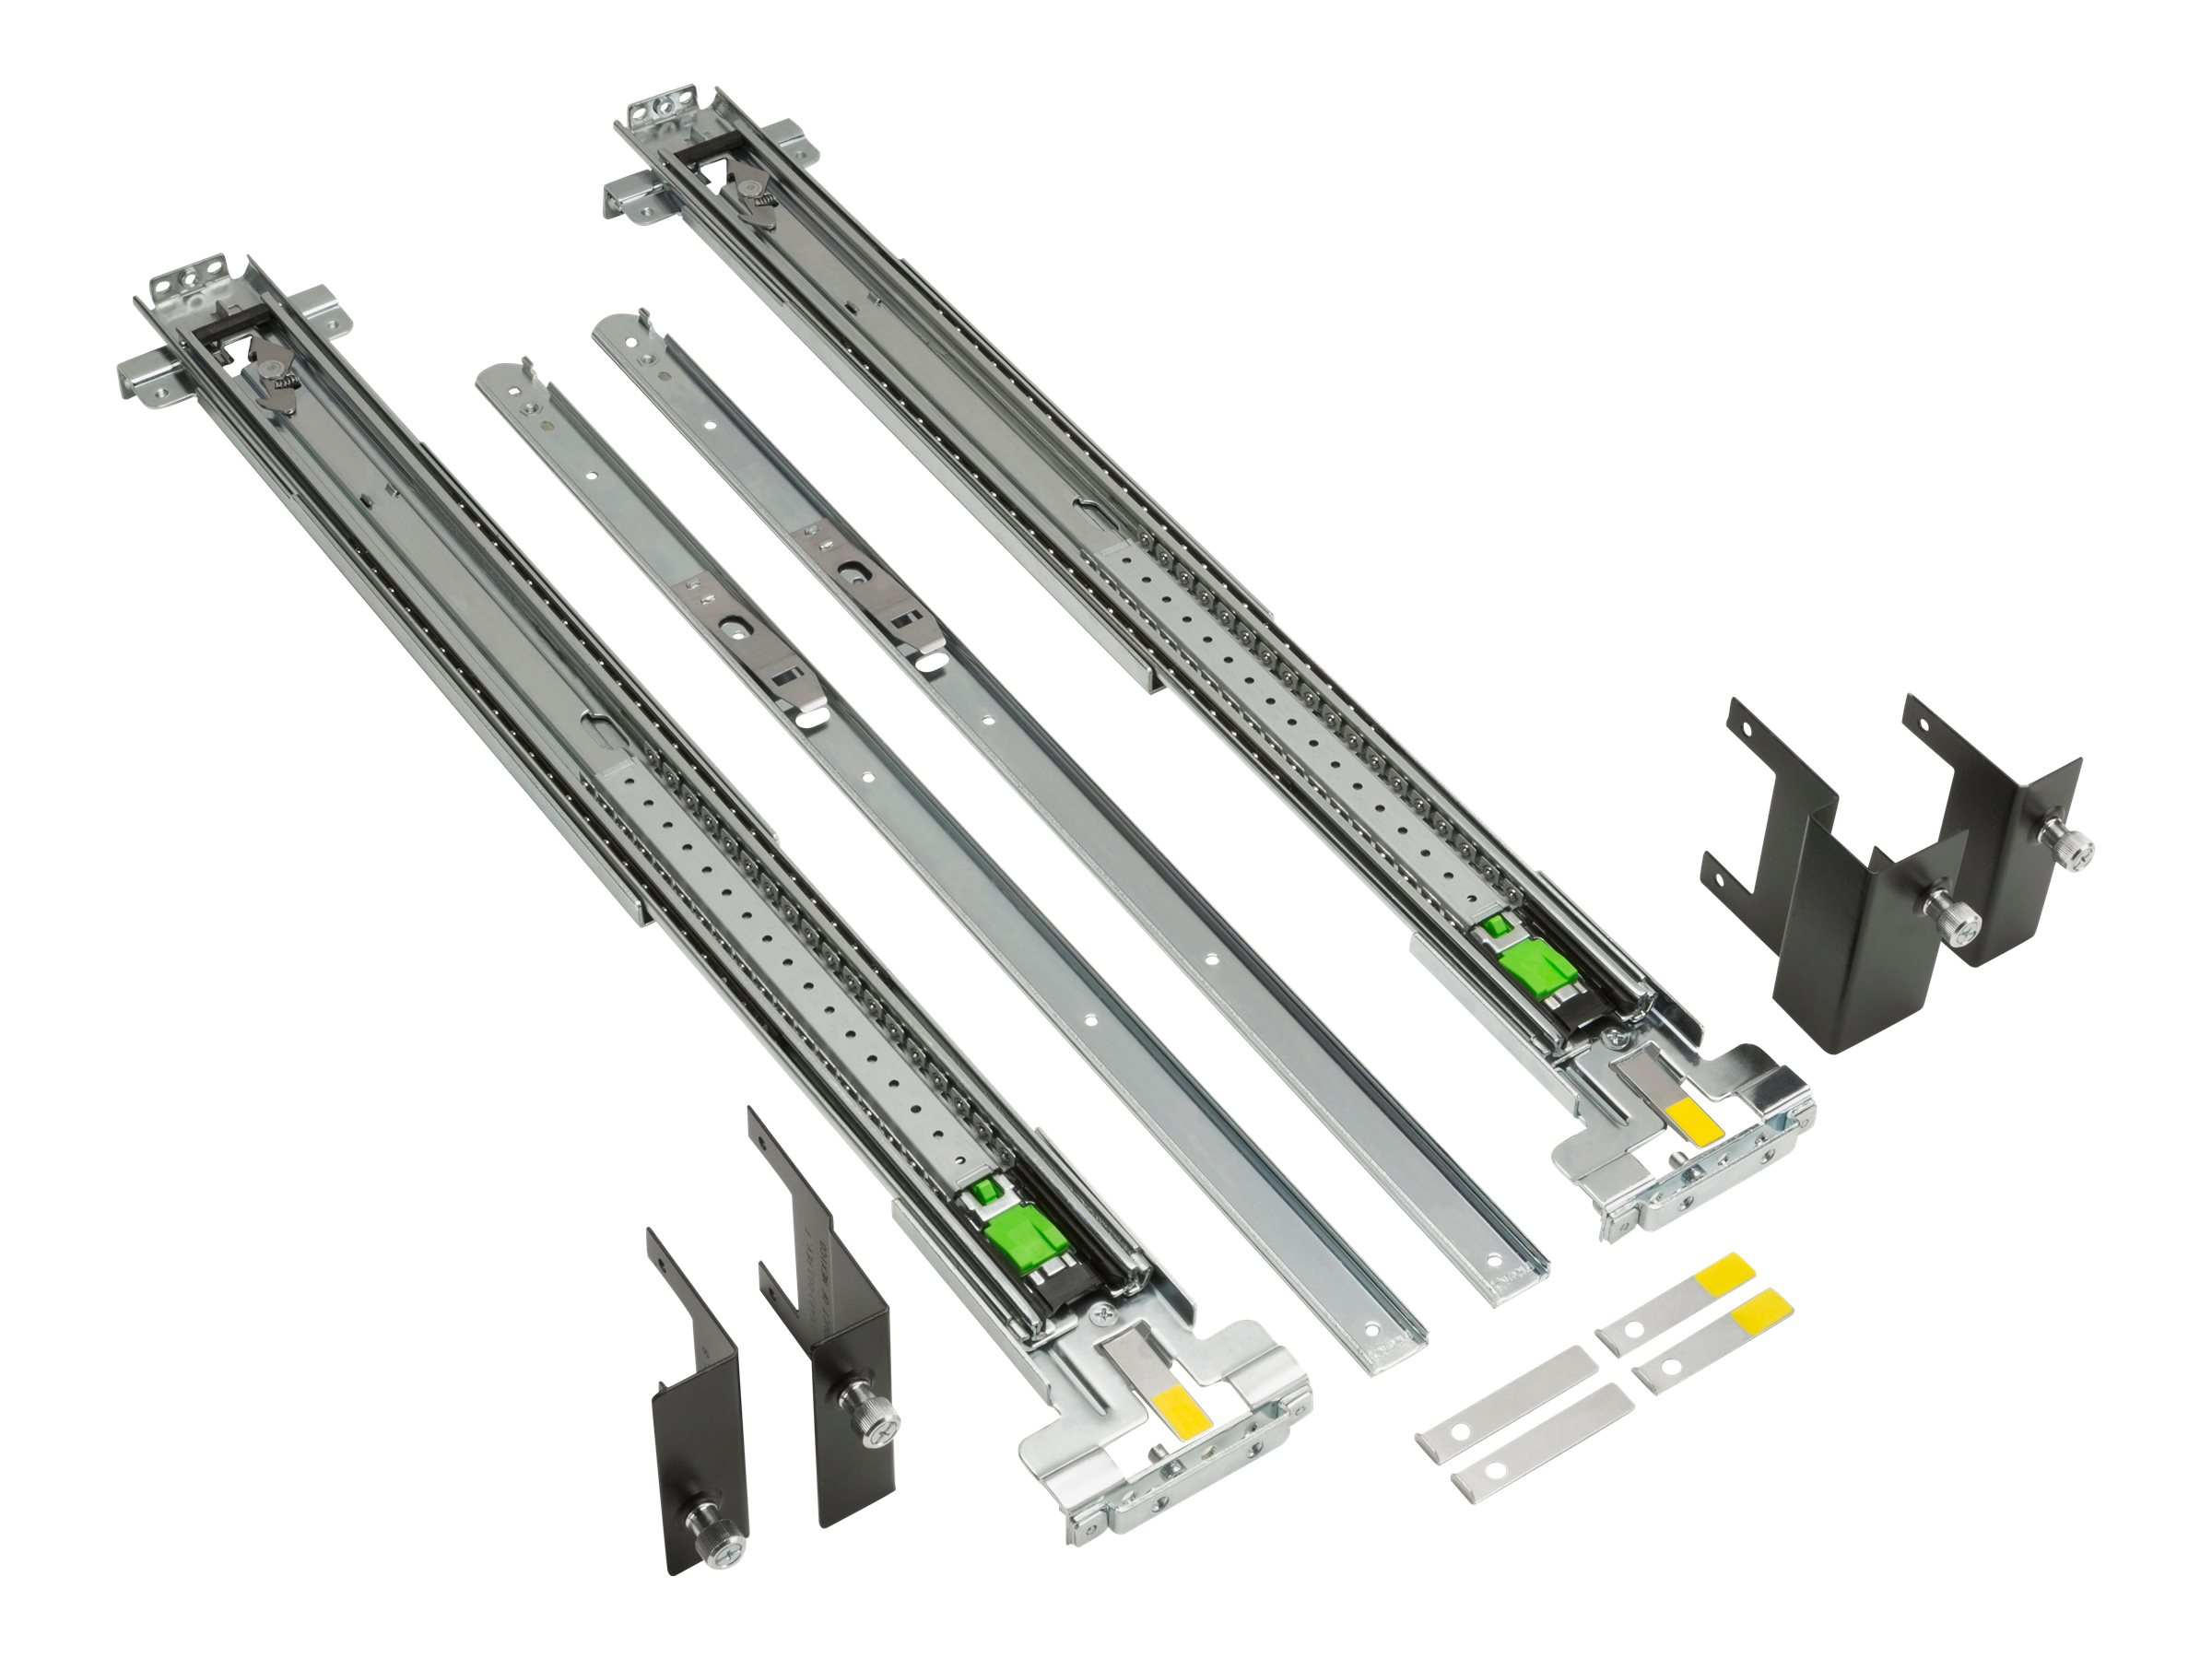 HP Adjustable Rail Rack Kit Flush Mount - Rack-Schienen-Kit - für ProOne 400 G2; Workstation z600, Z600 85%, Z620, z800, Z800 85%, Z820; Workstation z600